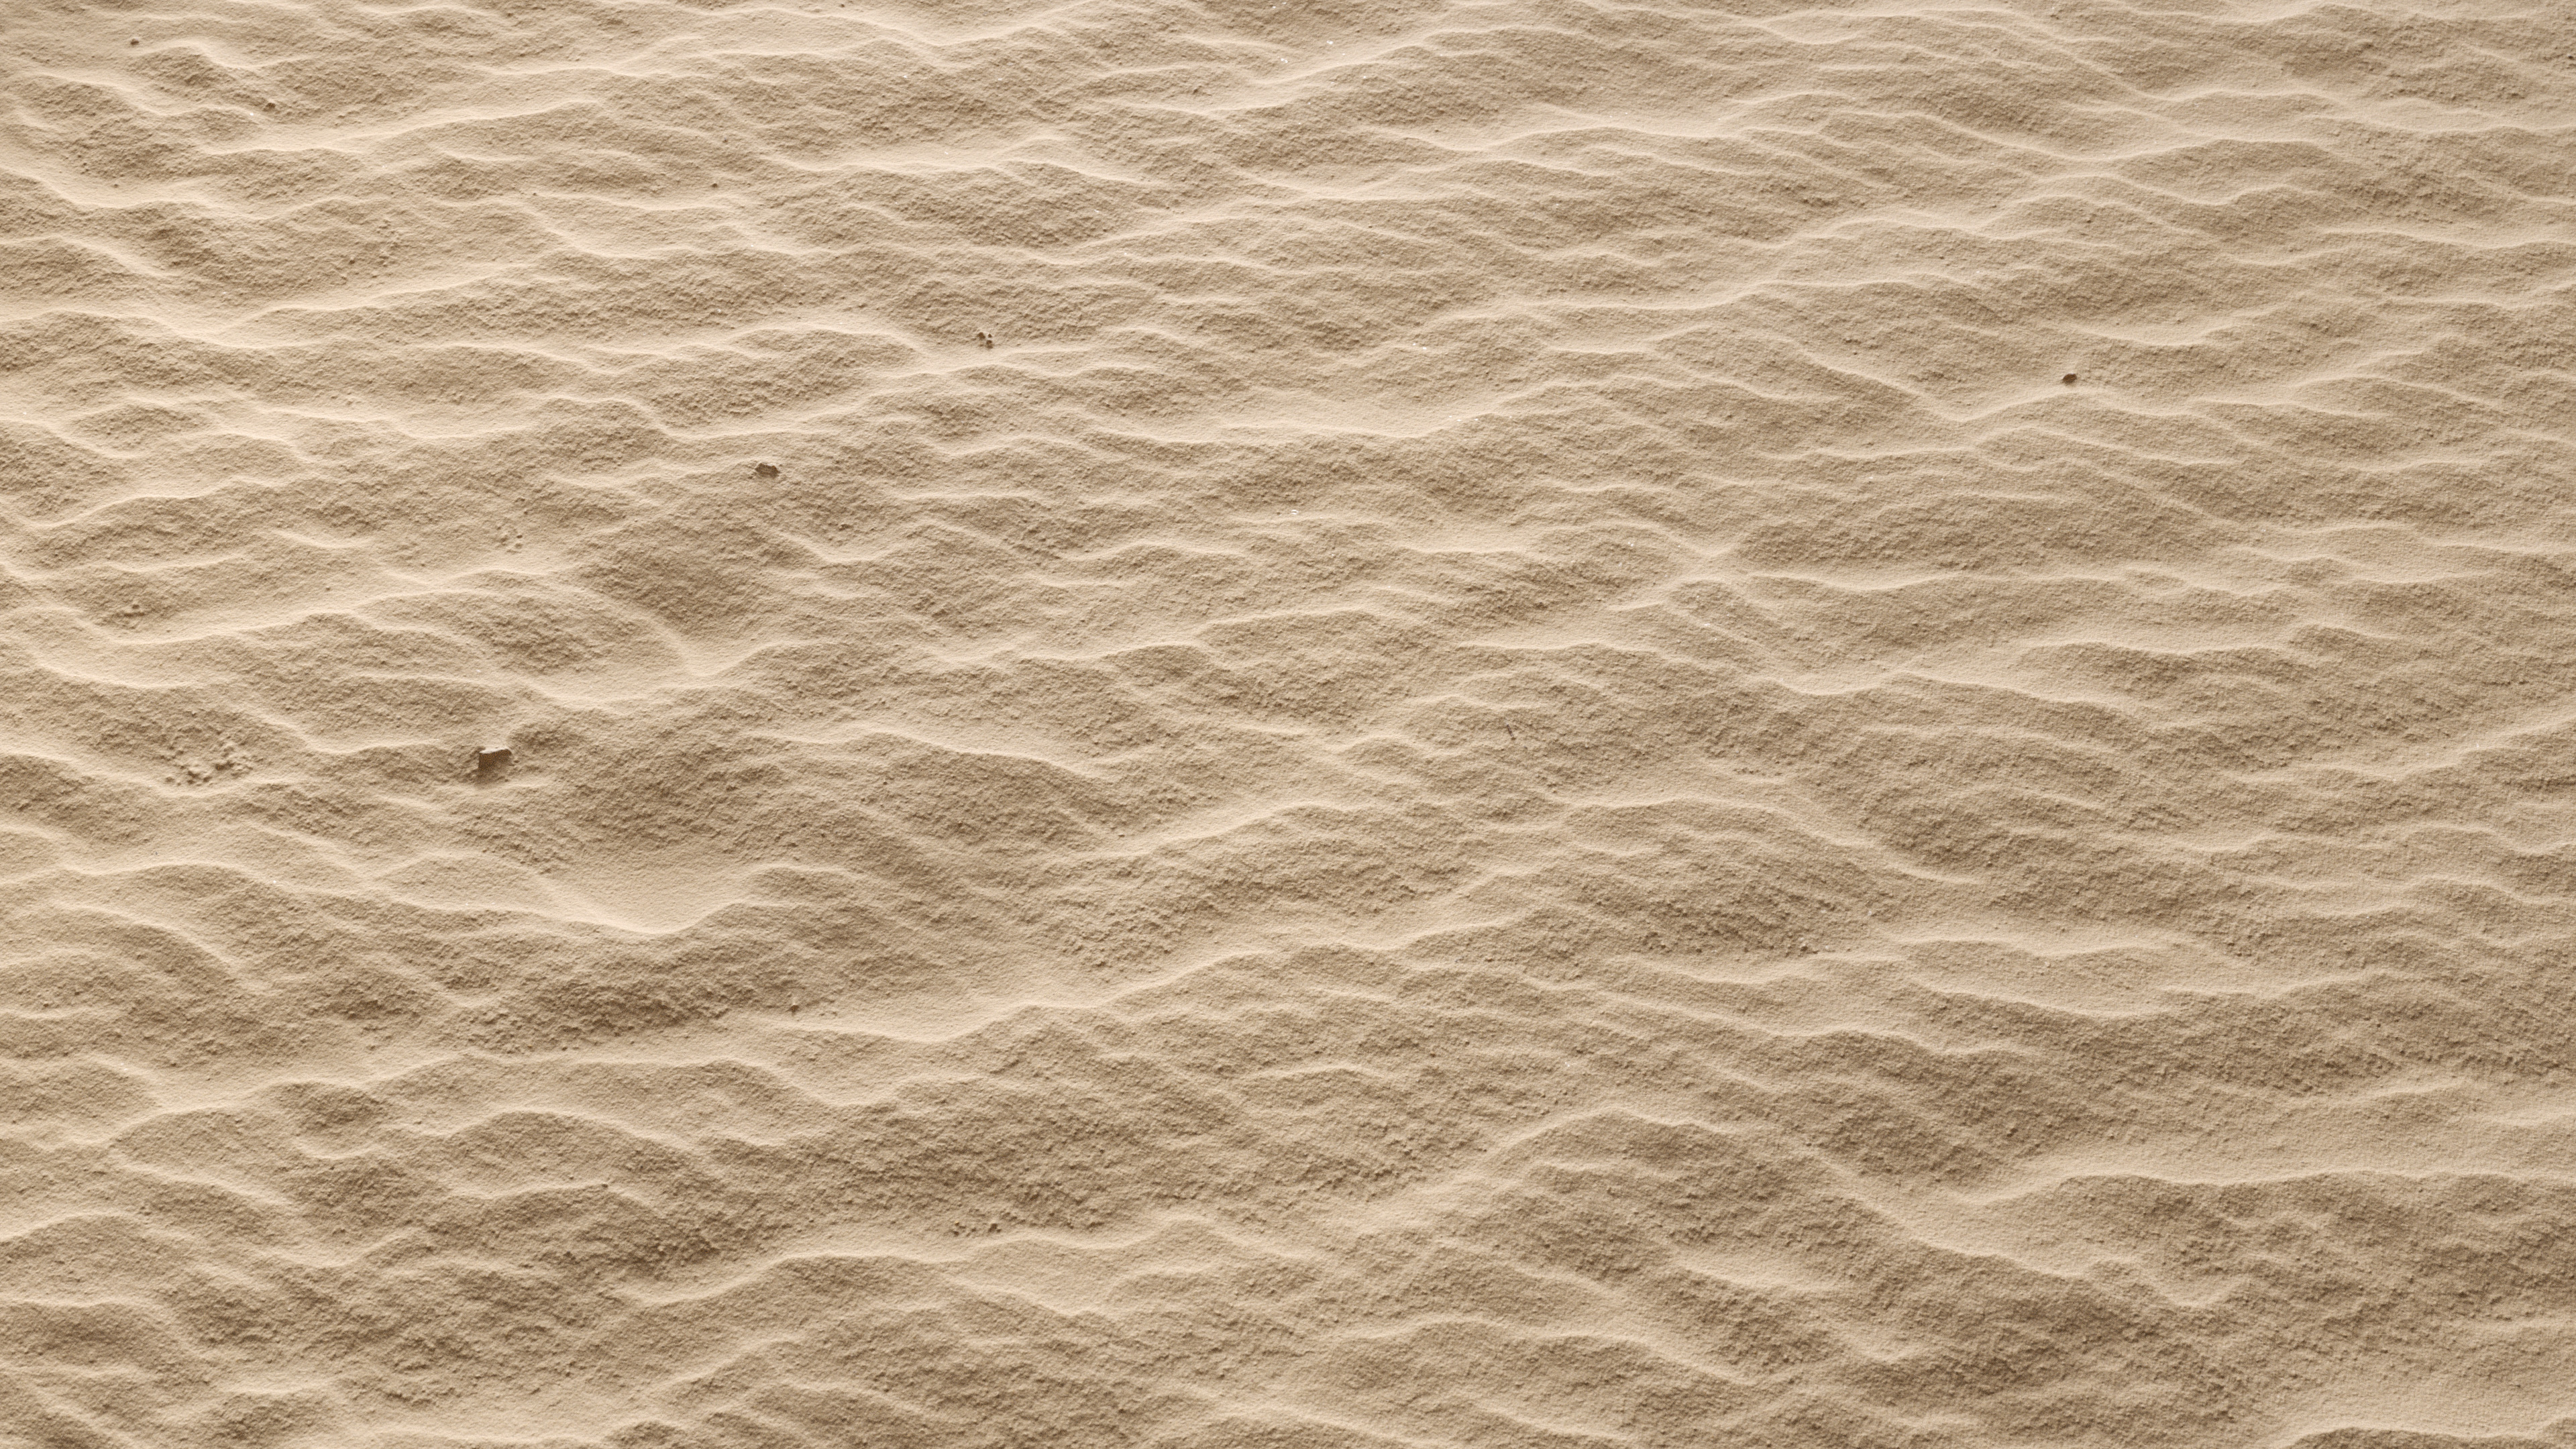 3d Scanned Dry Desert Sand 3 2x2 Meters